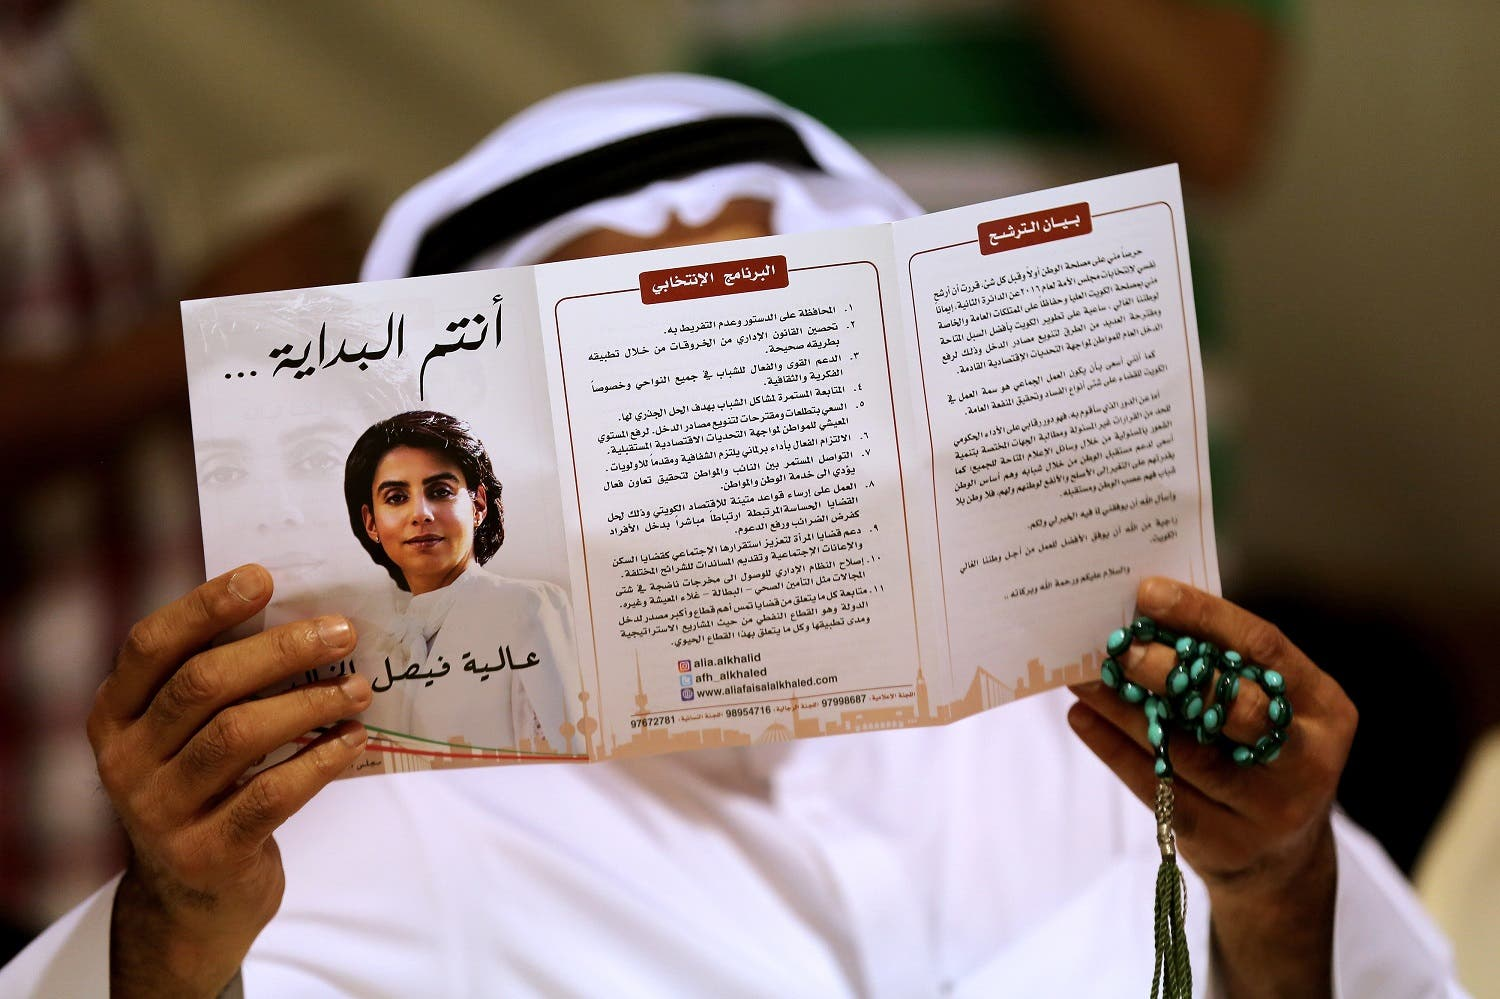 A Kuwaiti man holds a brochure as he attends a campaign meeting for Kuwaiti female candidate Alia al-Khaled. (AFP)